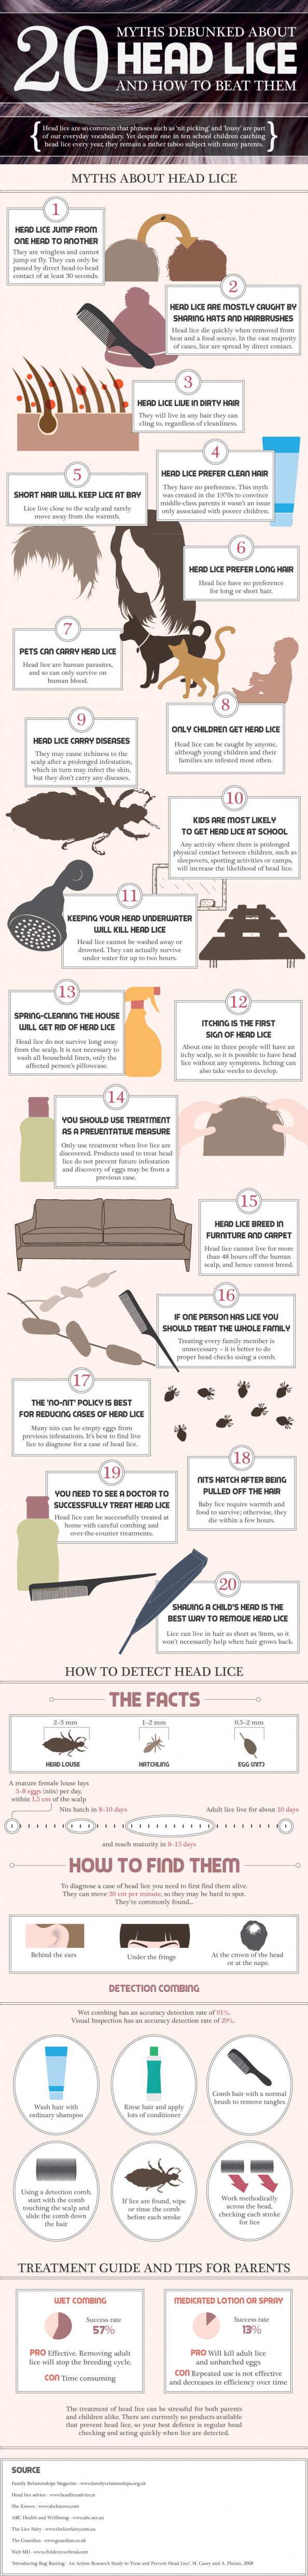 20 Facts About Headlice [Infographic] Infographic